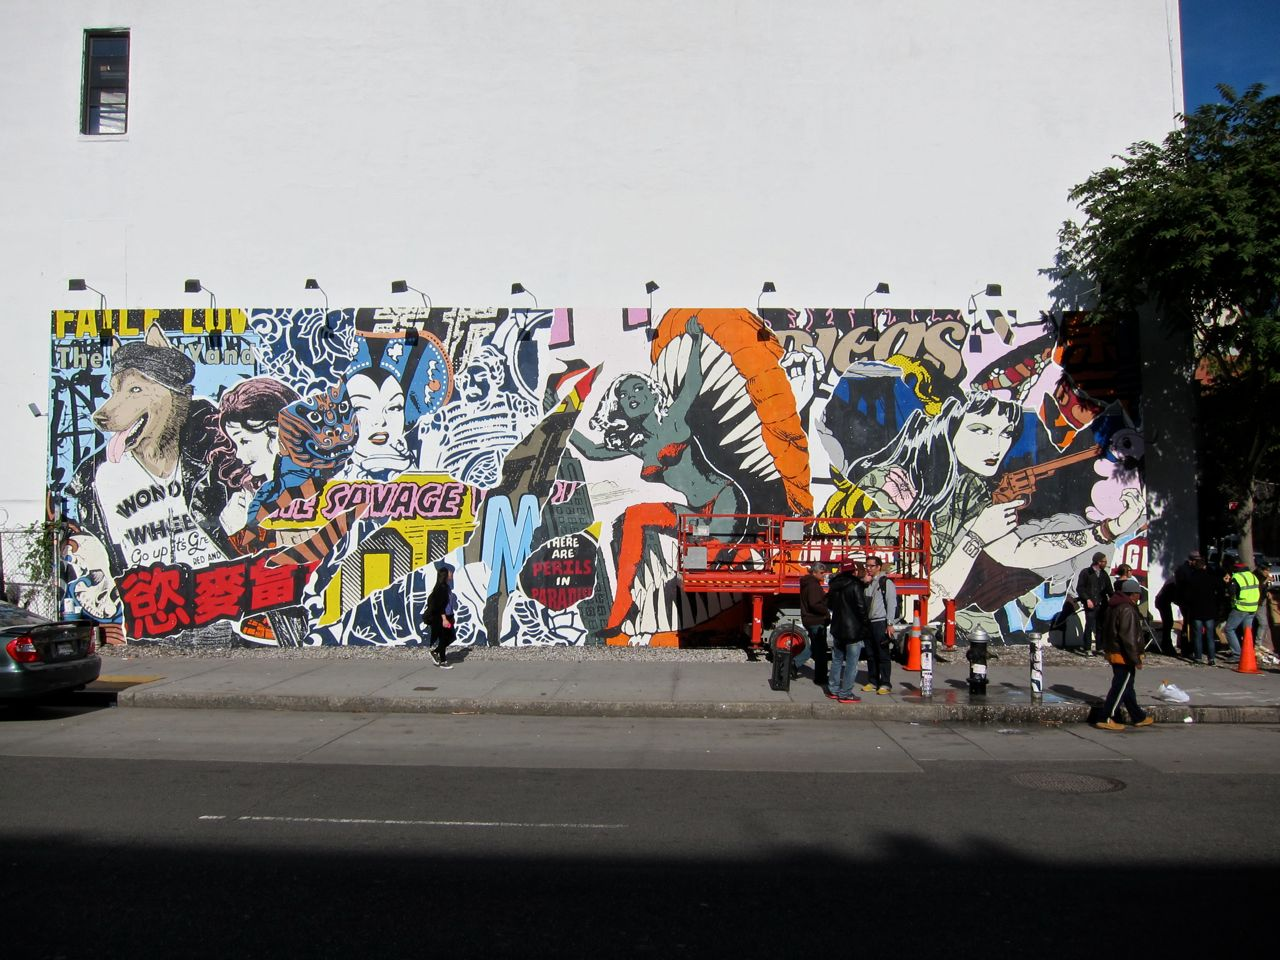 Faile Houston Bowery Goldman Mural 26